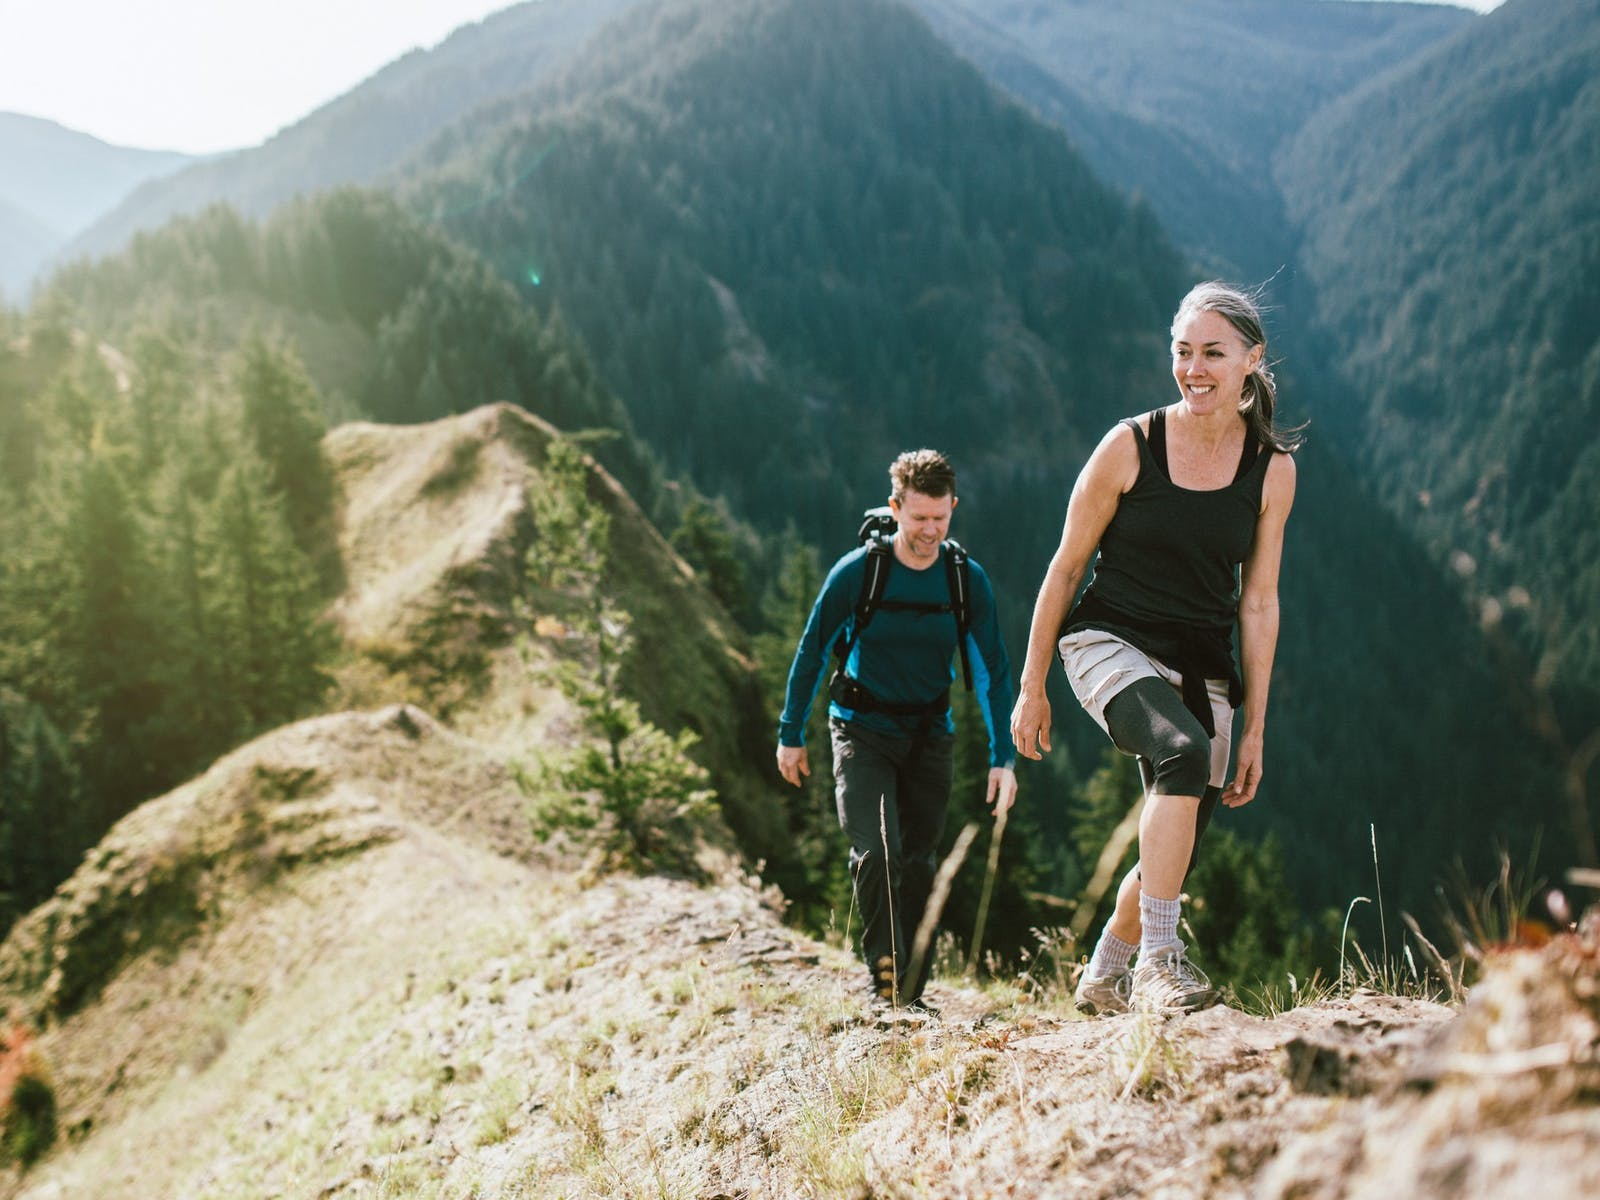 Two people hiking in the Colorado mountains